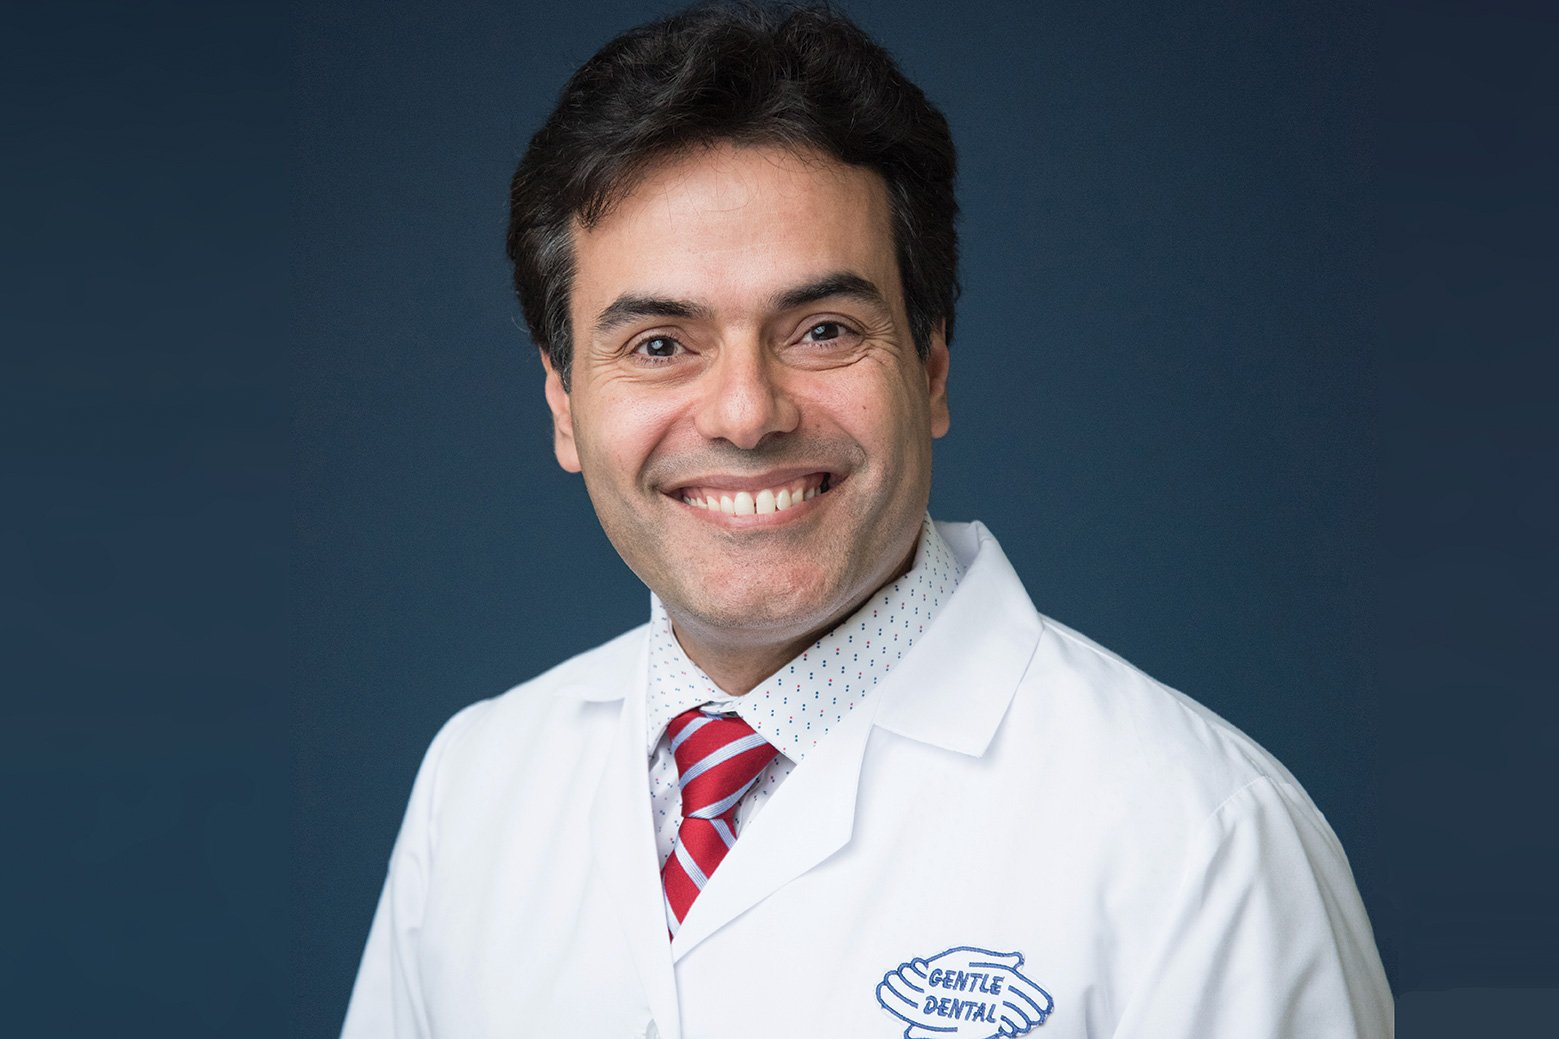 Dr. Marco Amer